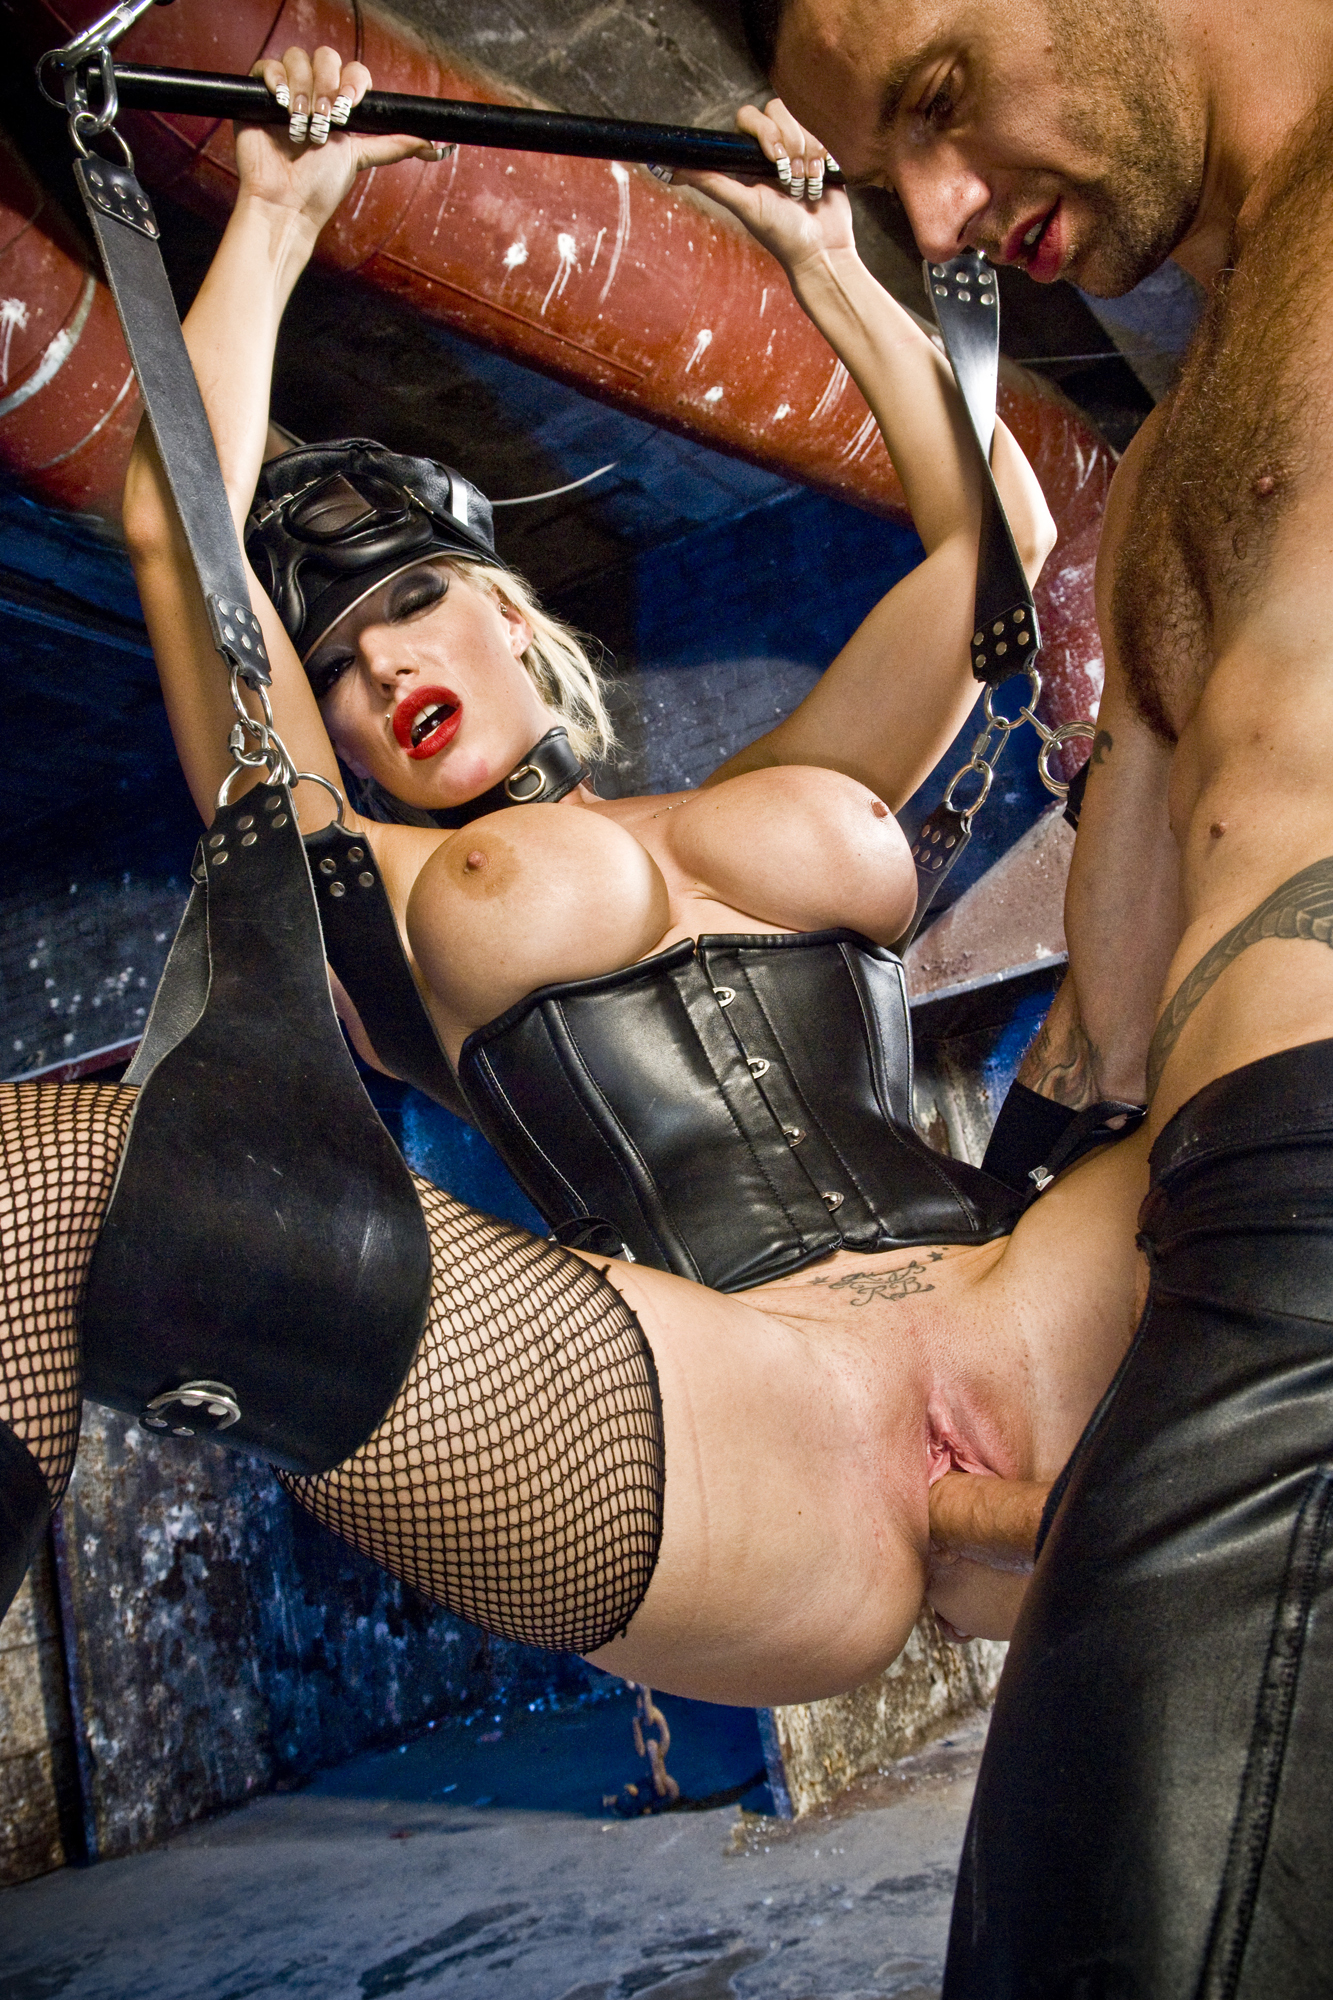 Latex chaps on hot slut